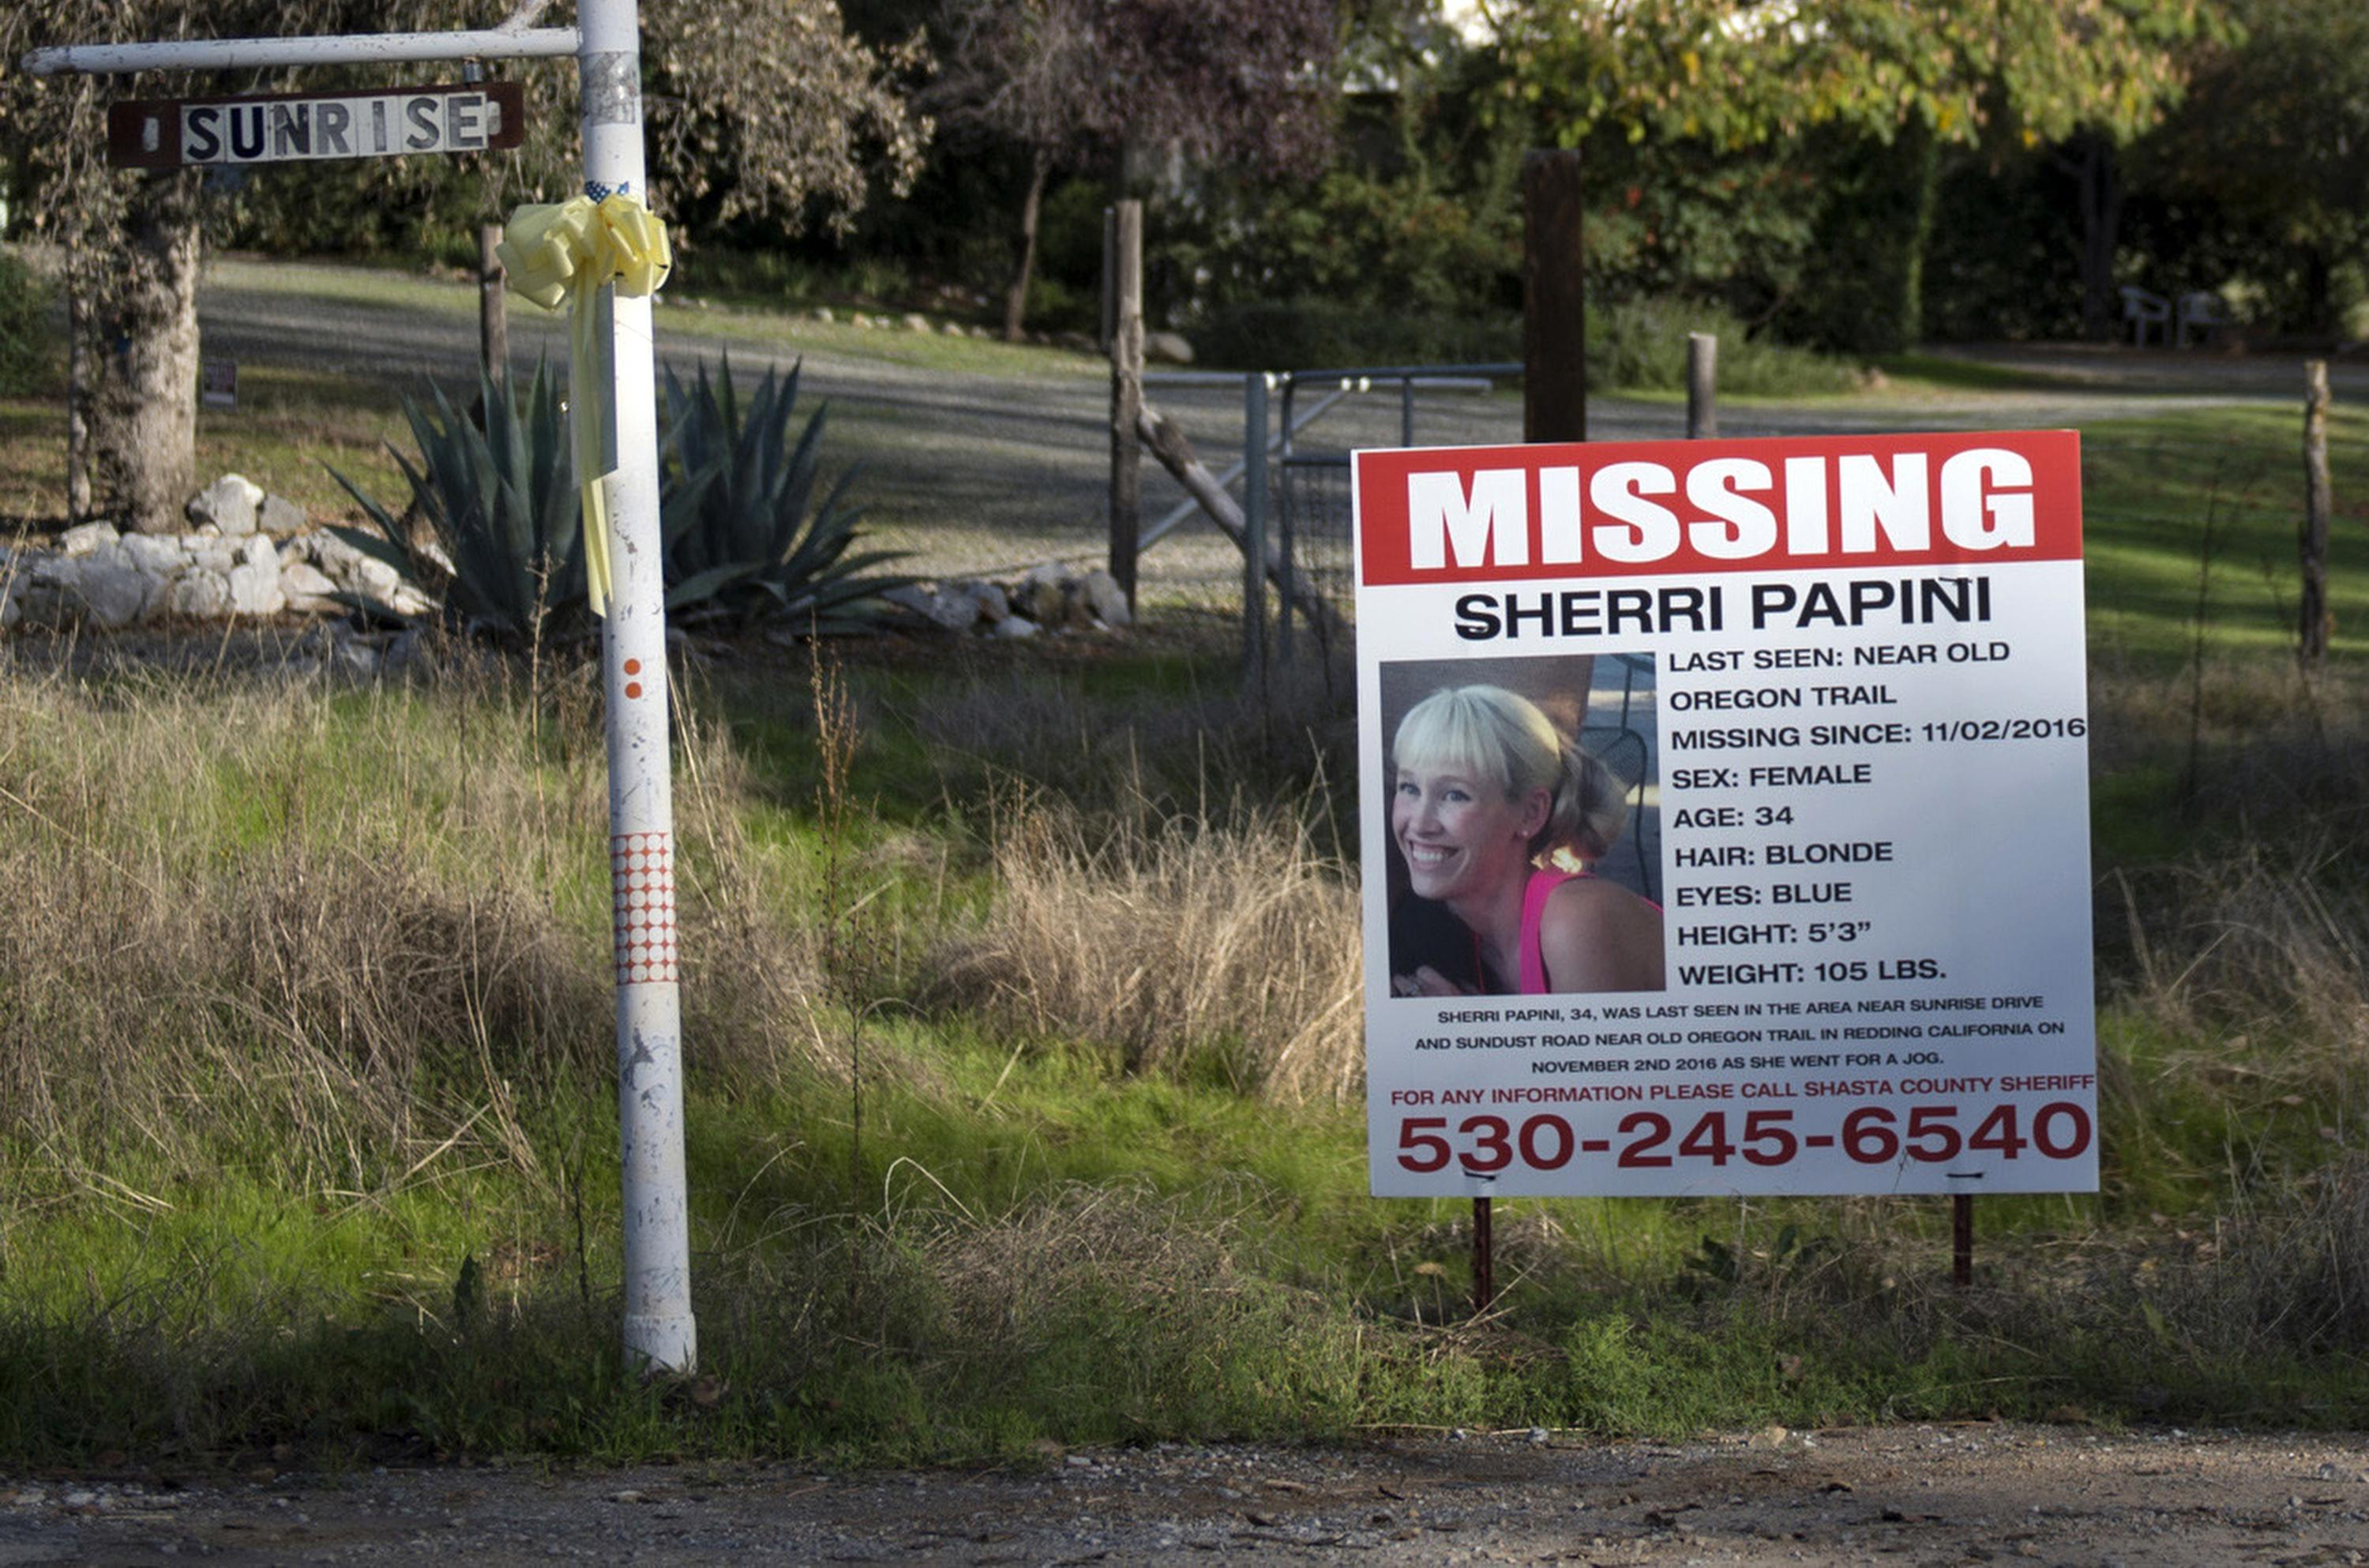 Abducted California mom had message burned onto skin, sheriff says